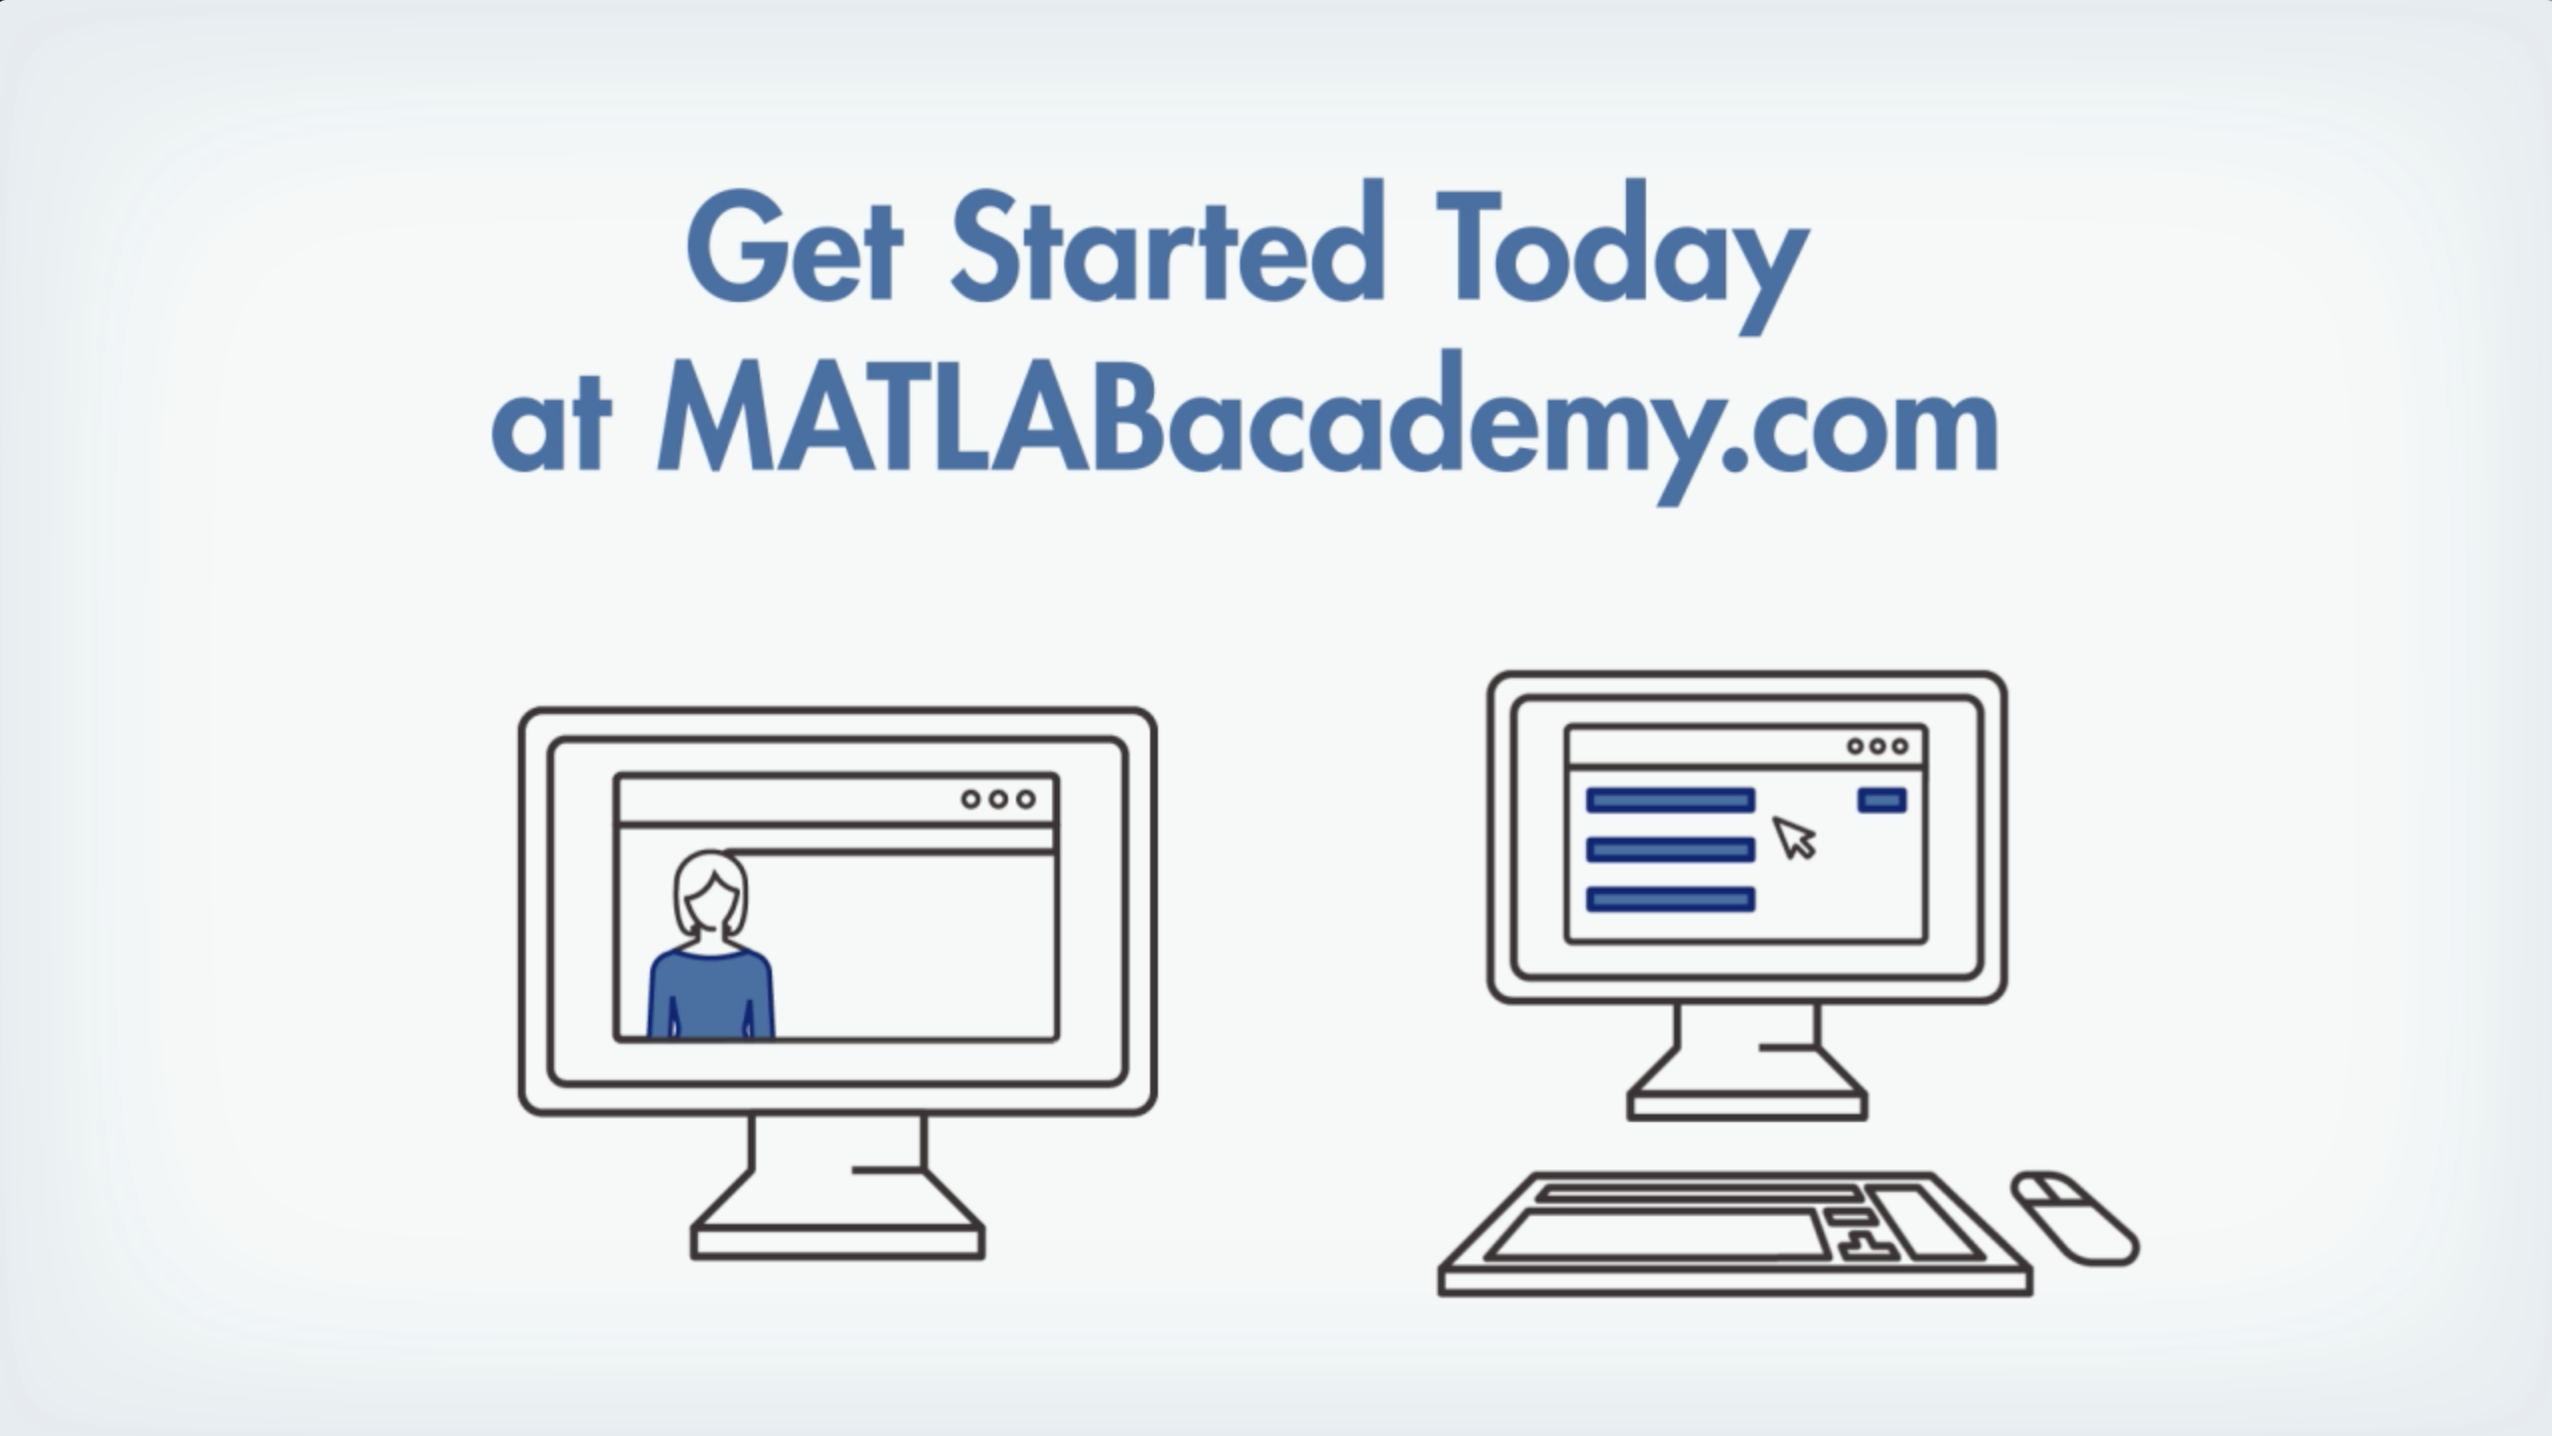 Enhance your MATLAB knowledge and skills—anytime, anywhere. Learn why over 100,000 users chose MathWorks interactive self-paced training courses to accelerate their proficiency with MATLAB.